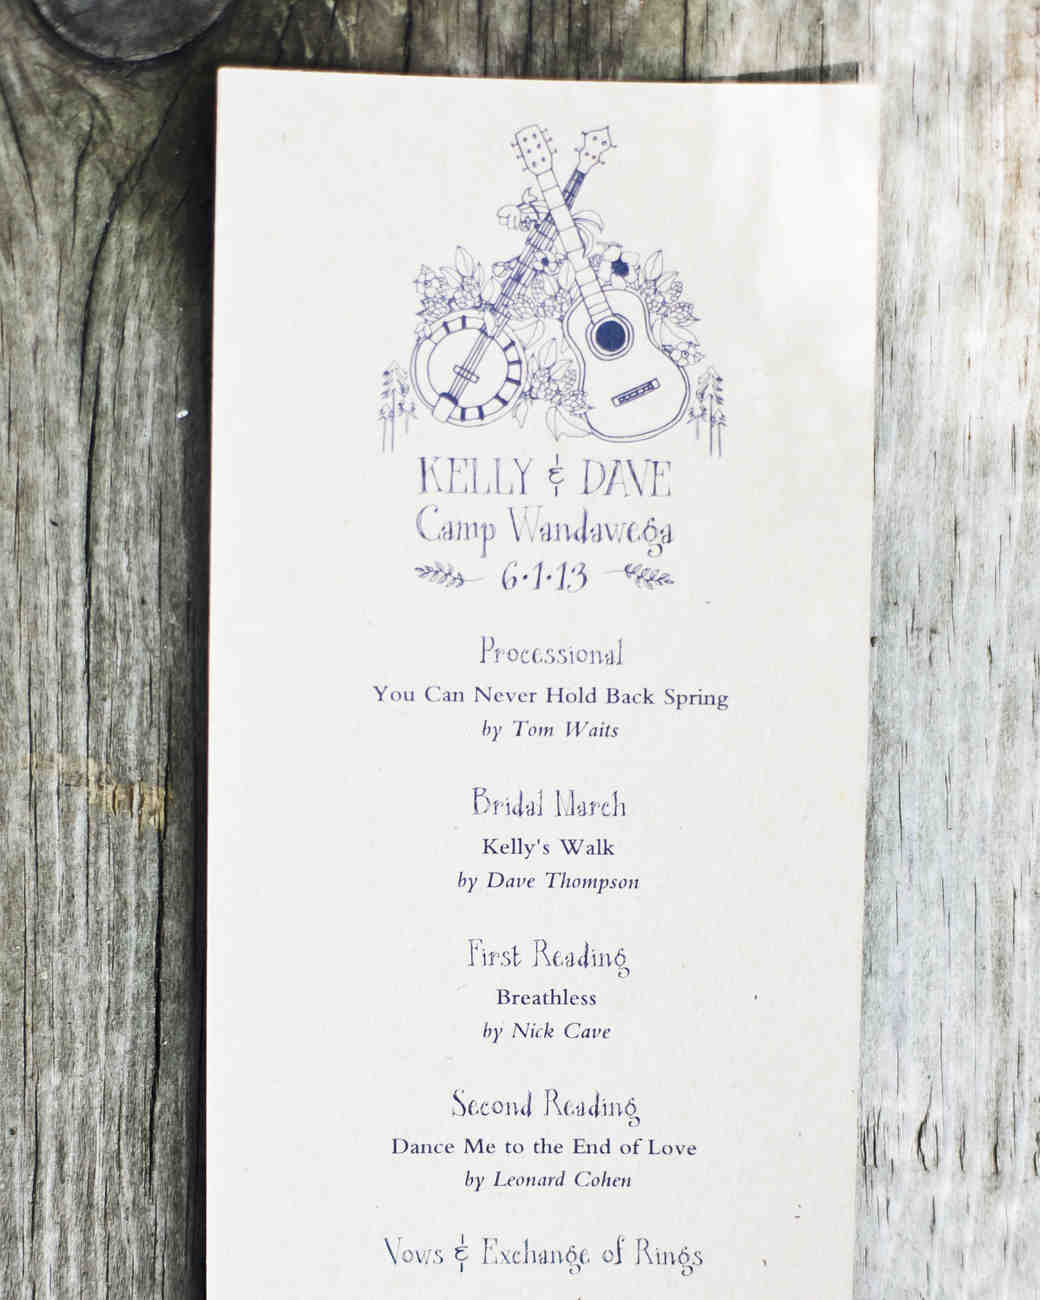 kelly-marie-dave-wedding-program-0414.jpg